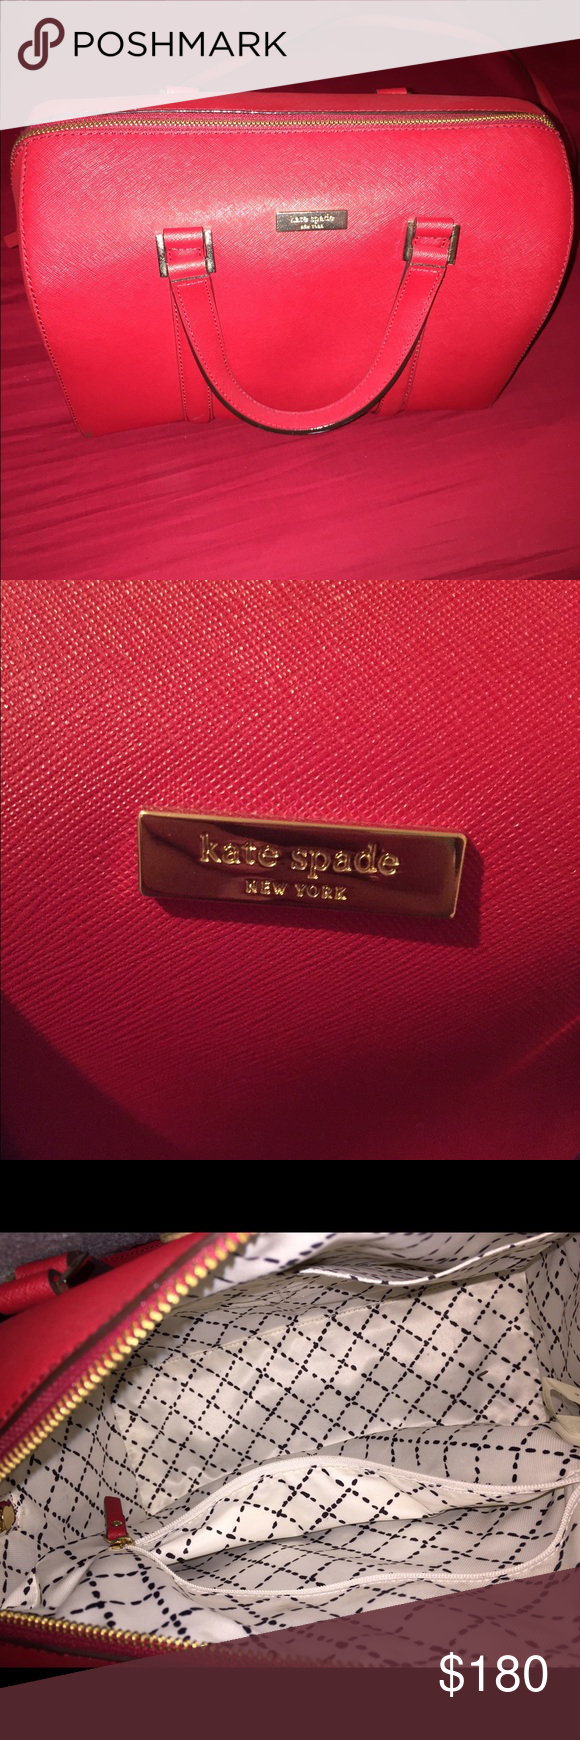 Red Kate Spade handbag 100% authentic! Got it about a year ago at a Kate Spade Store. Used about 5 times, an amazing bag & extremely spacious! Don't need it anymore so selling! kate spade Bags Shoulder Bags